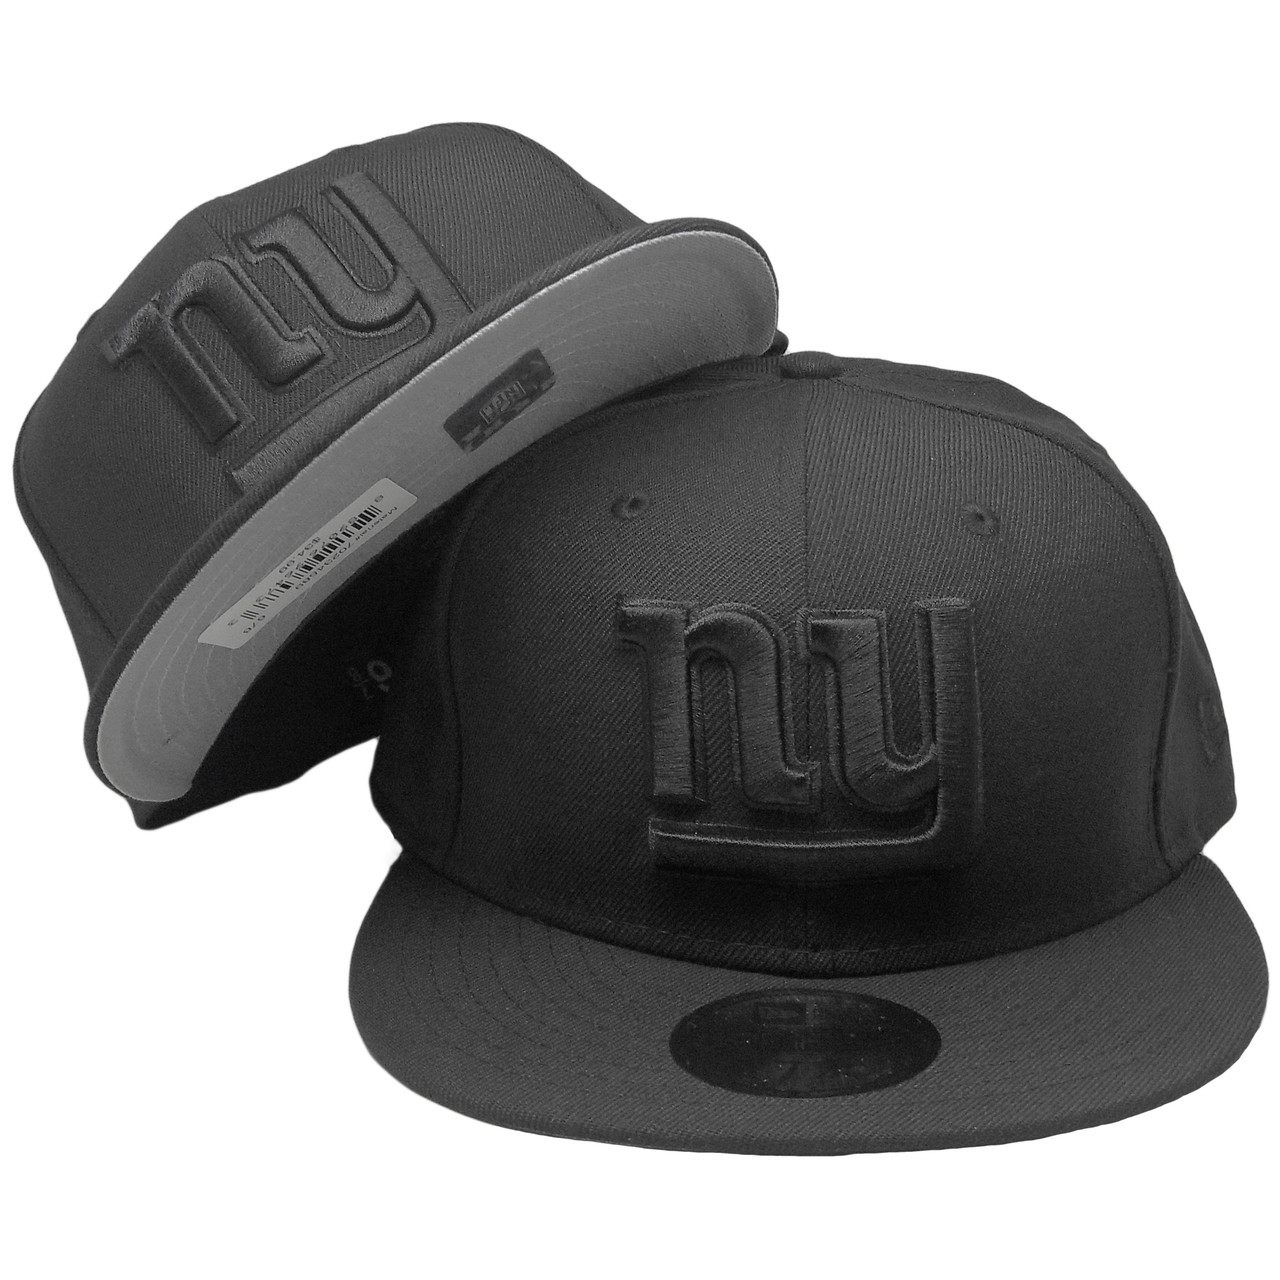 b4ad8583d45 New York Giants New Era Custom 59Fifty Fitted Hat - All Black ...